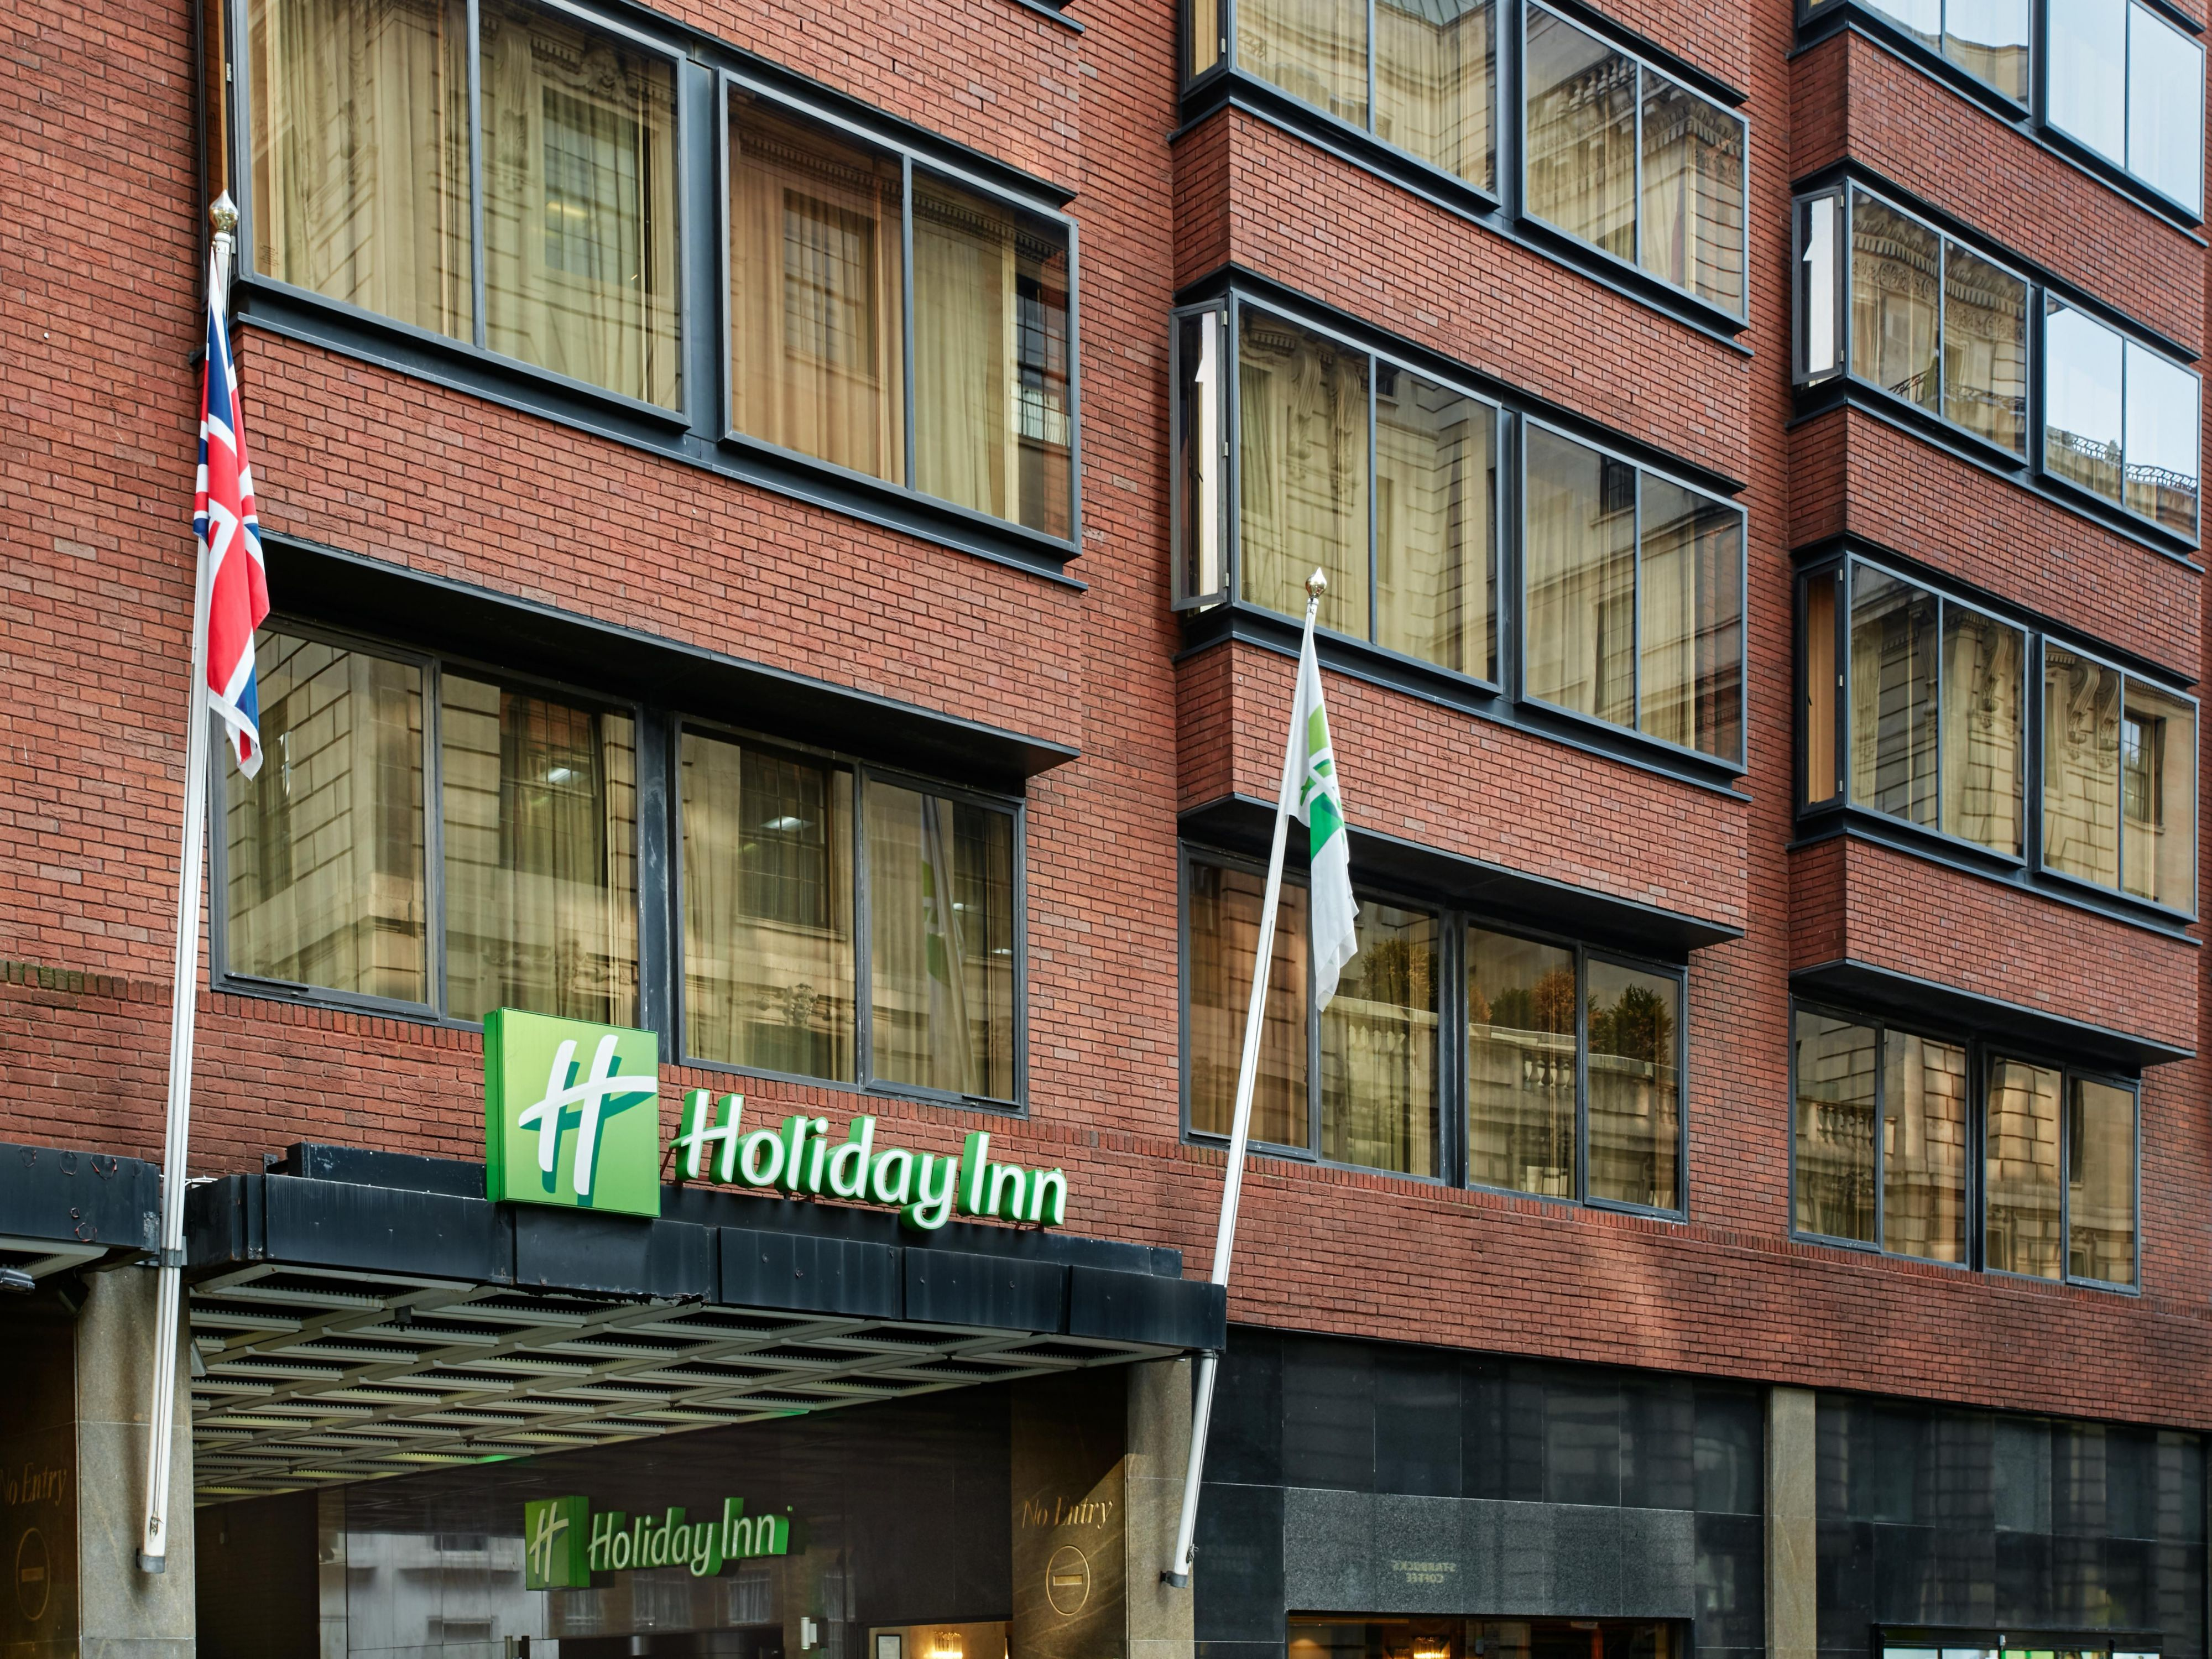 Welcome to Holiday Inn London Mayfair